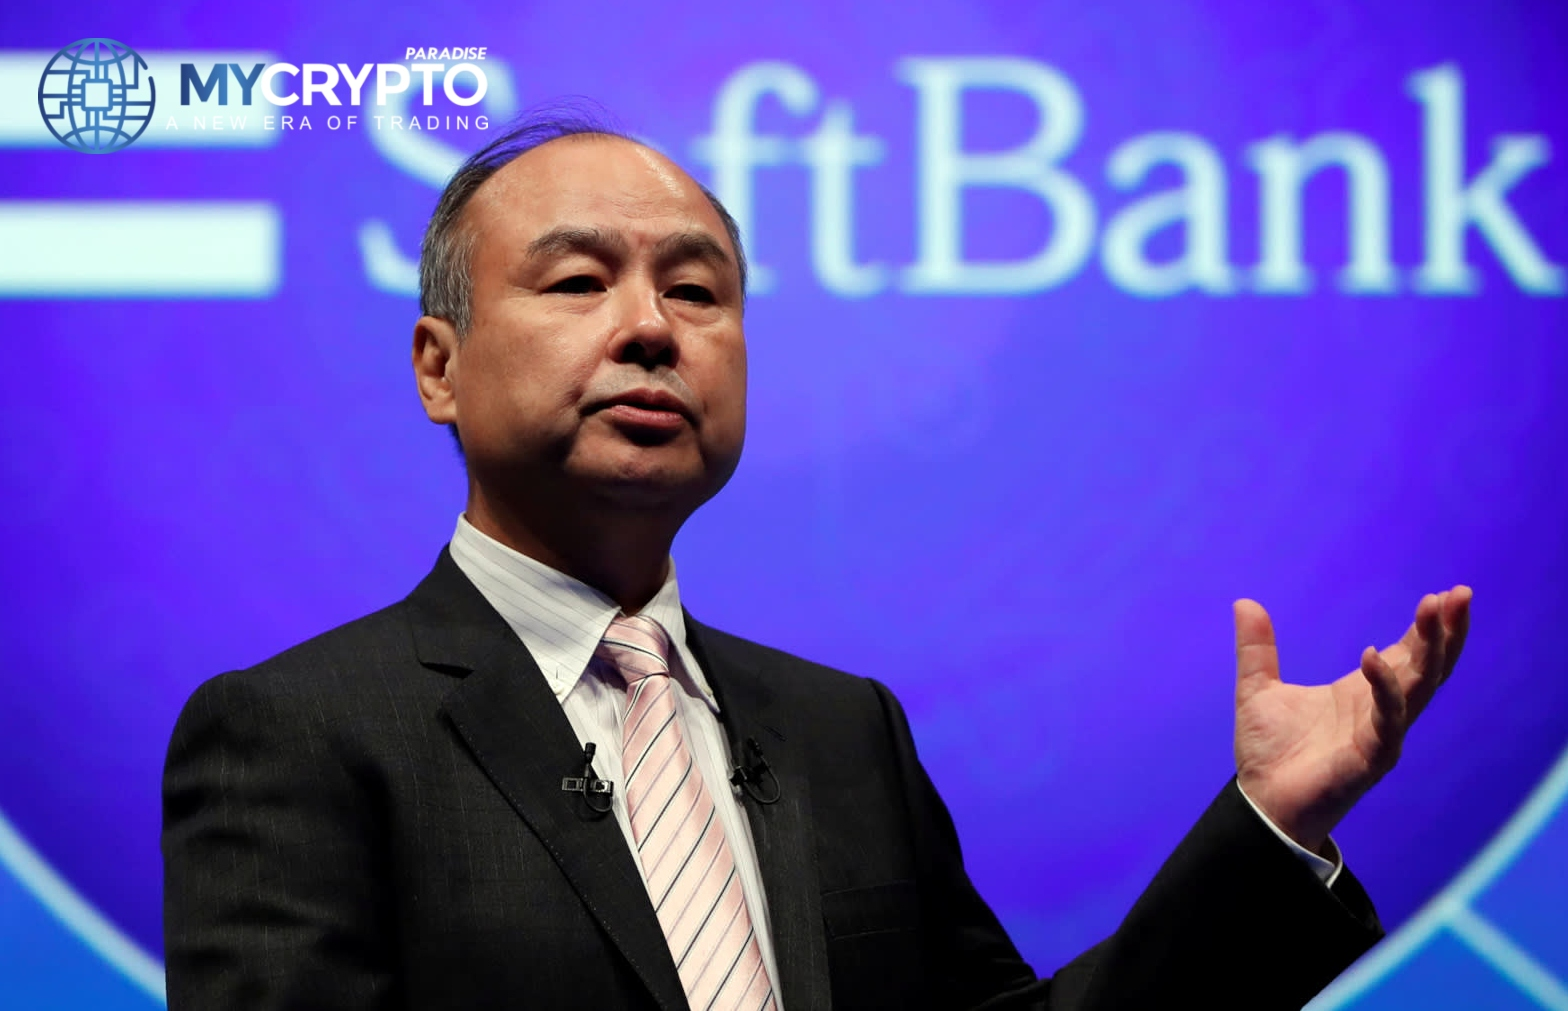 CEO Softbank does not understand Bitcoin